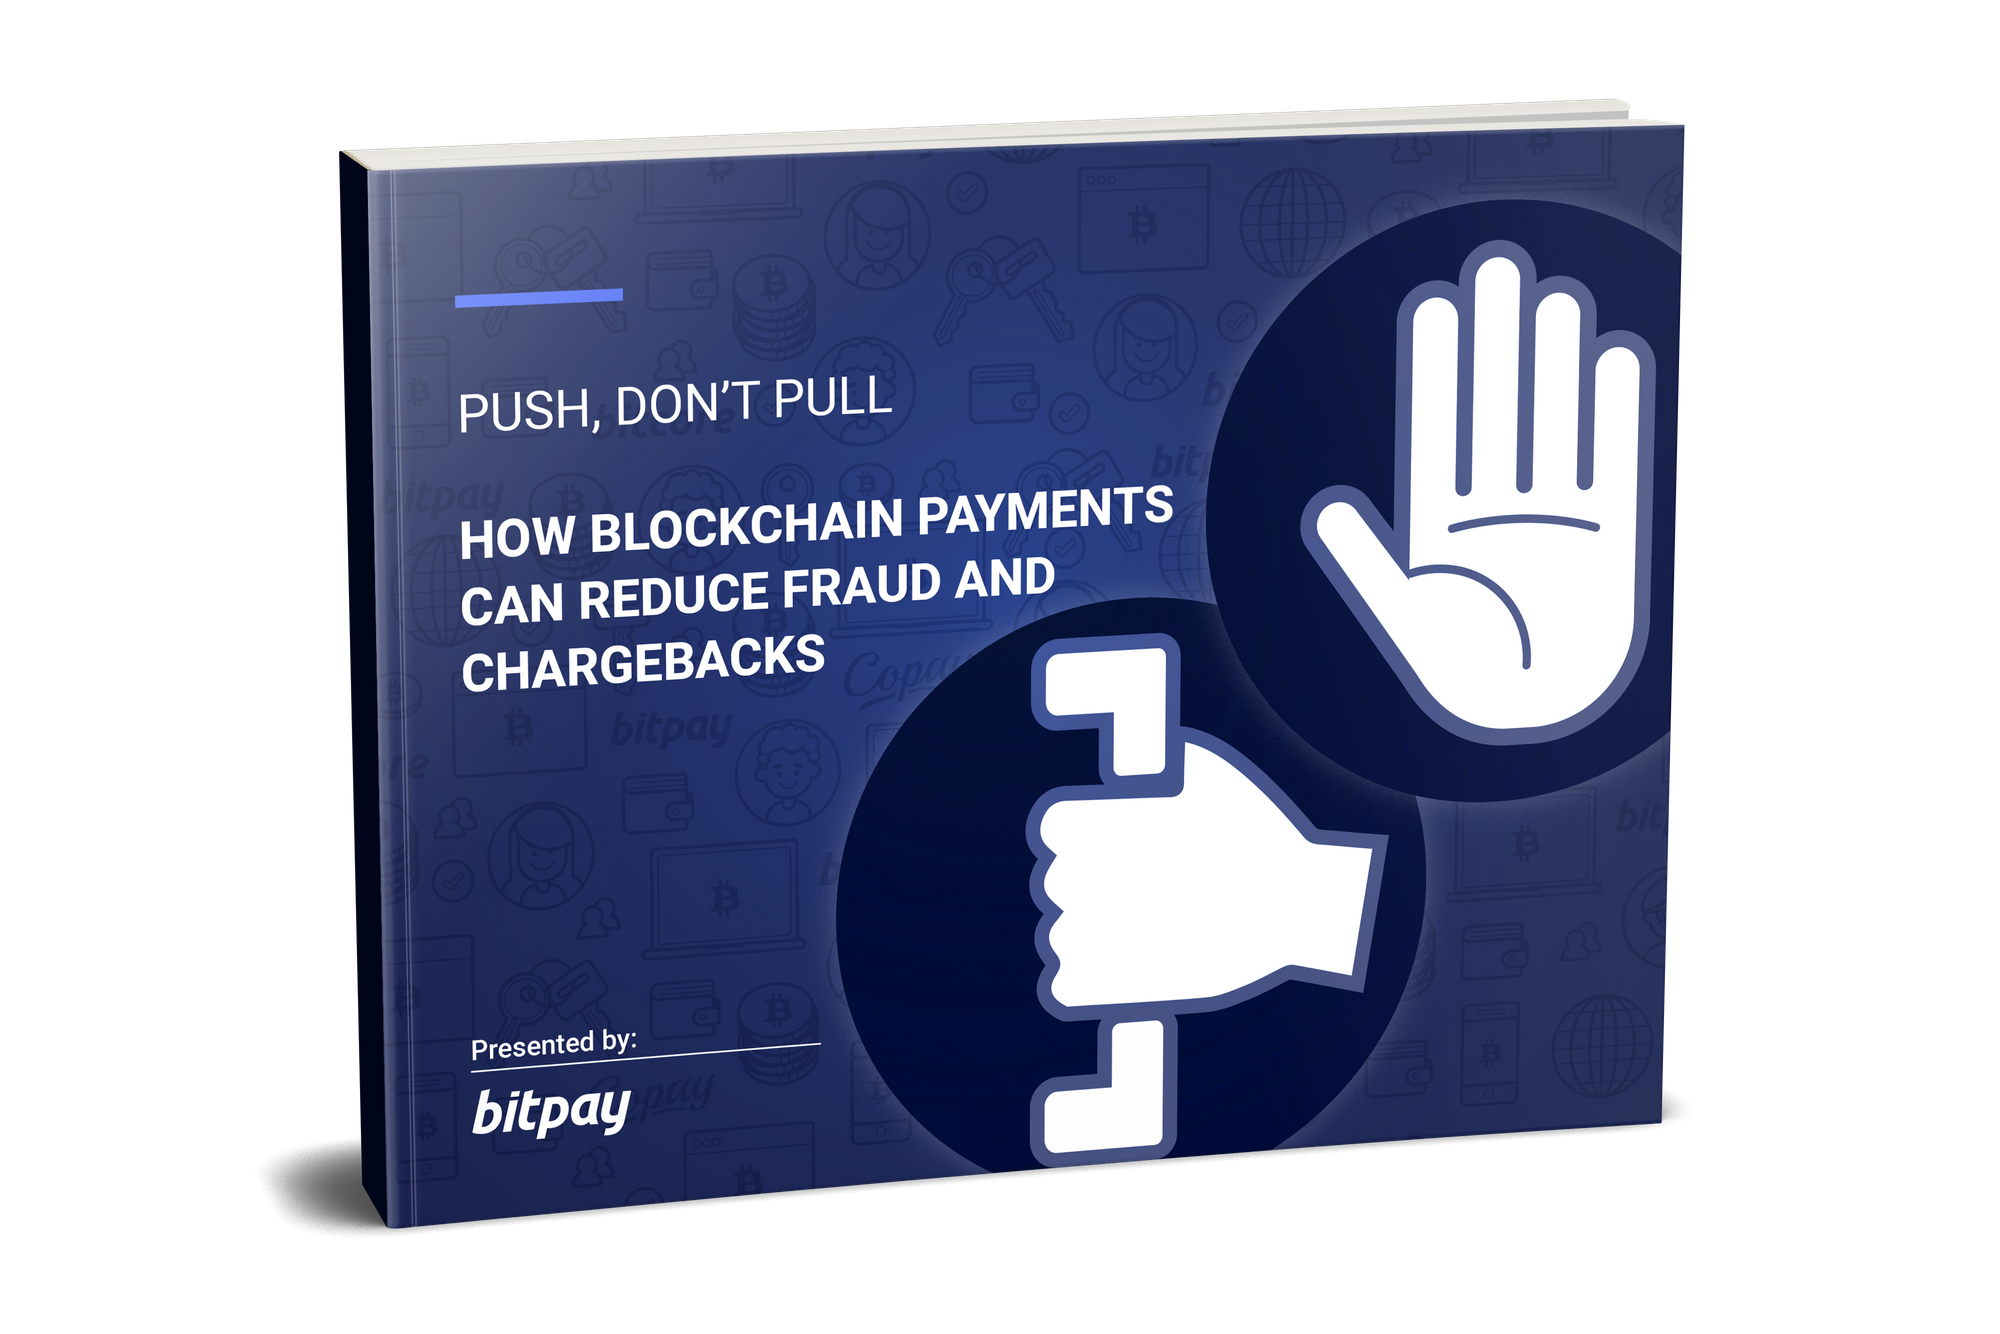 Introducing BitPay's New E-Book on Fraud, Chargebacks, and Blockchain Payments